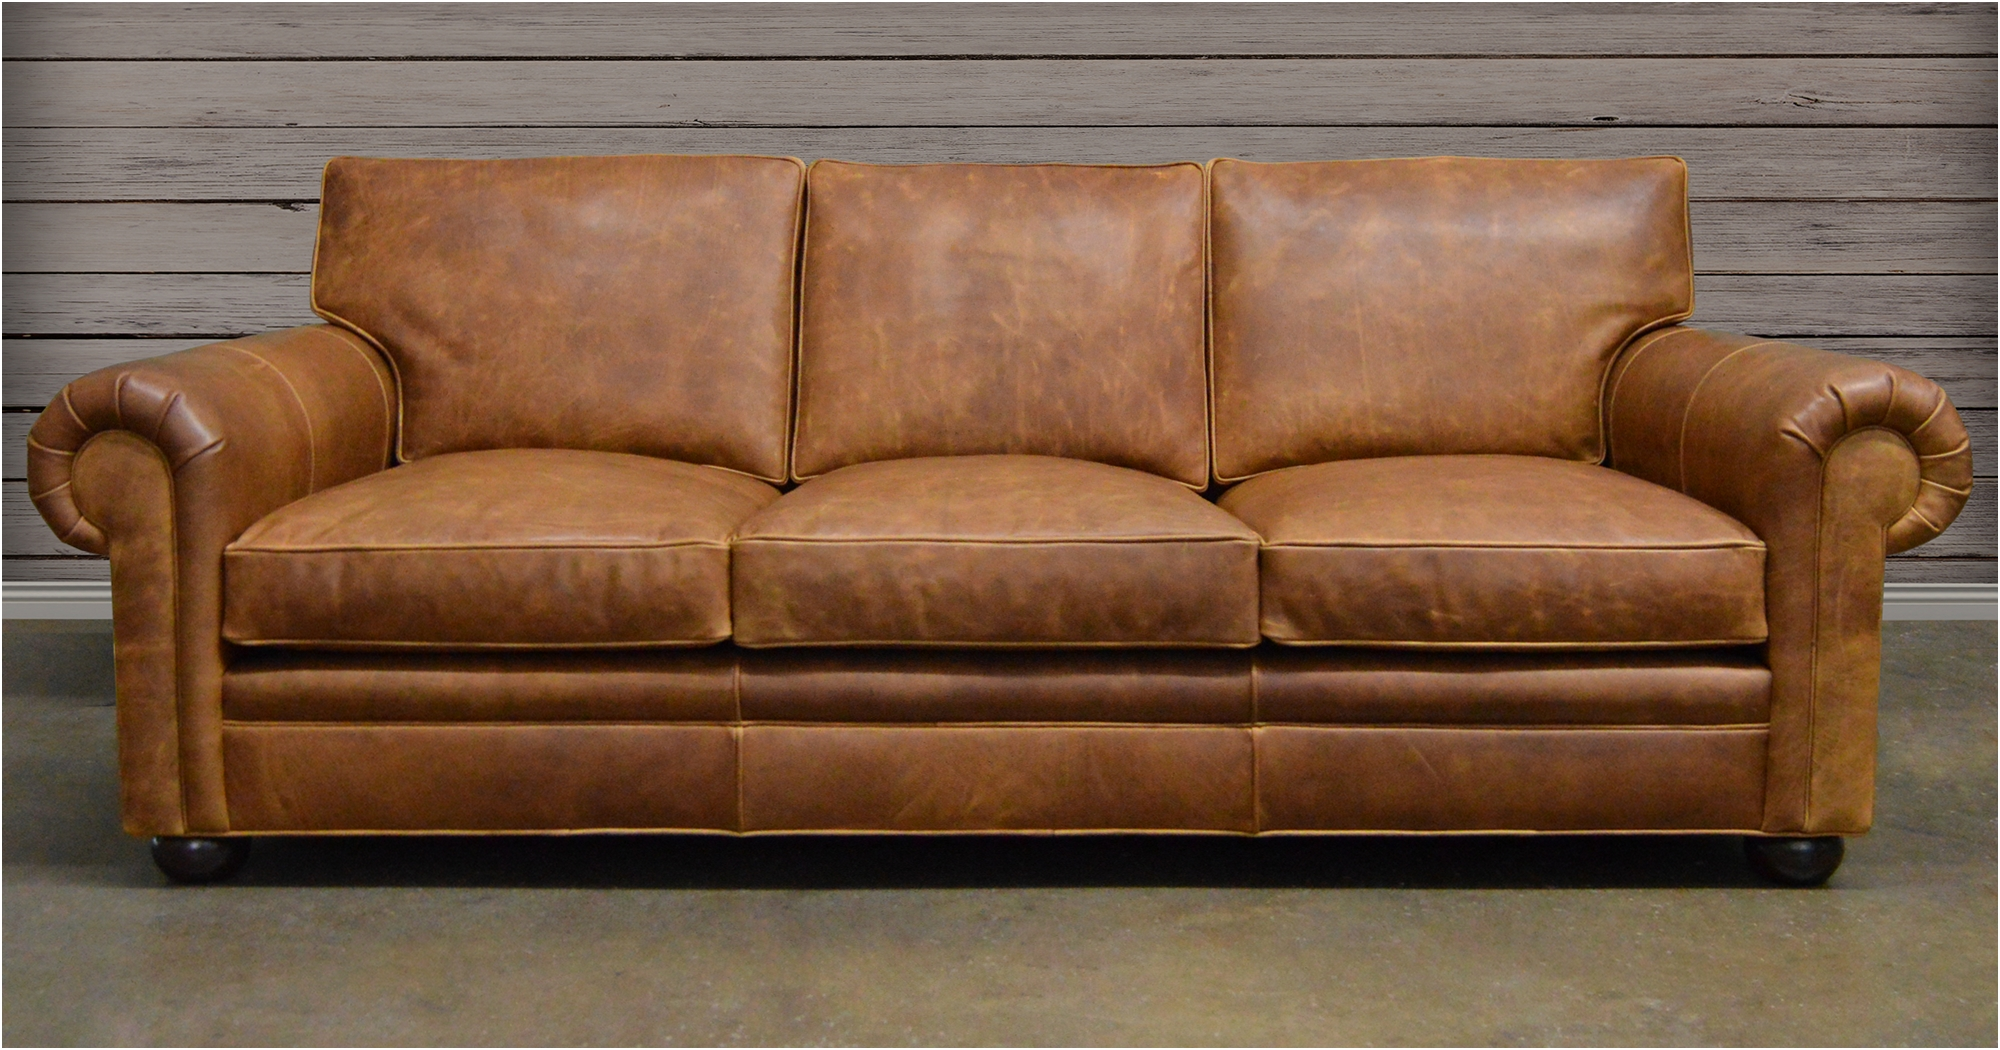 Well Known Made In North Carolina Sectional Sofas Regarding Sofa Custom Leather Canada Cushions Sectional Toronto Sofas Made (View 3 of 20)